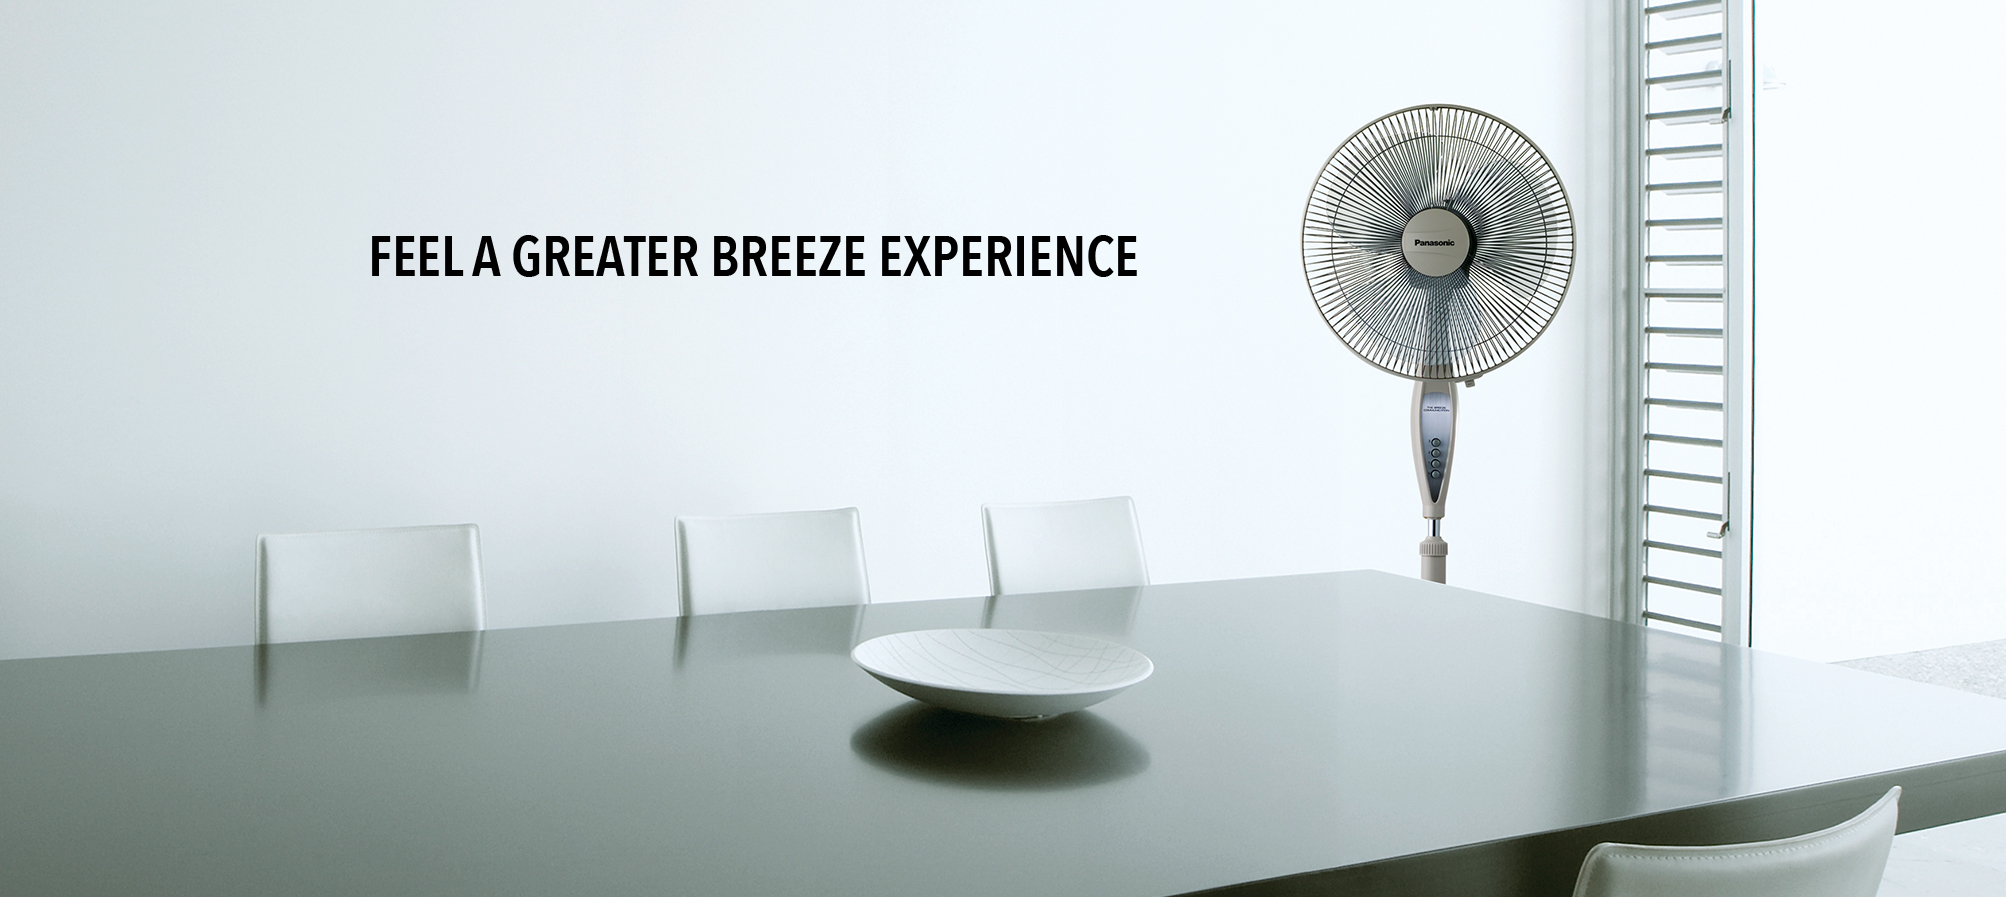 Panasonic General Fans are portable and convenient to use. With easy assembly and maintenance, durable motors and one-touch oscillation angles.